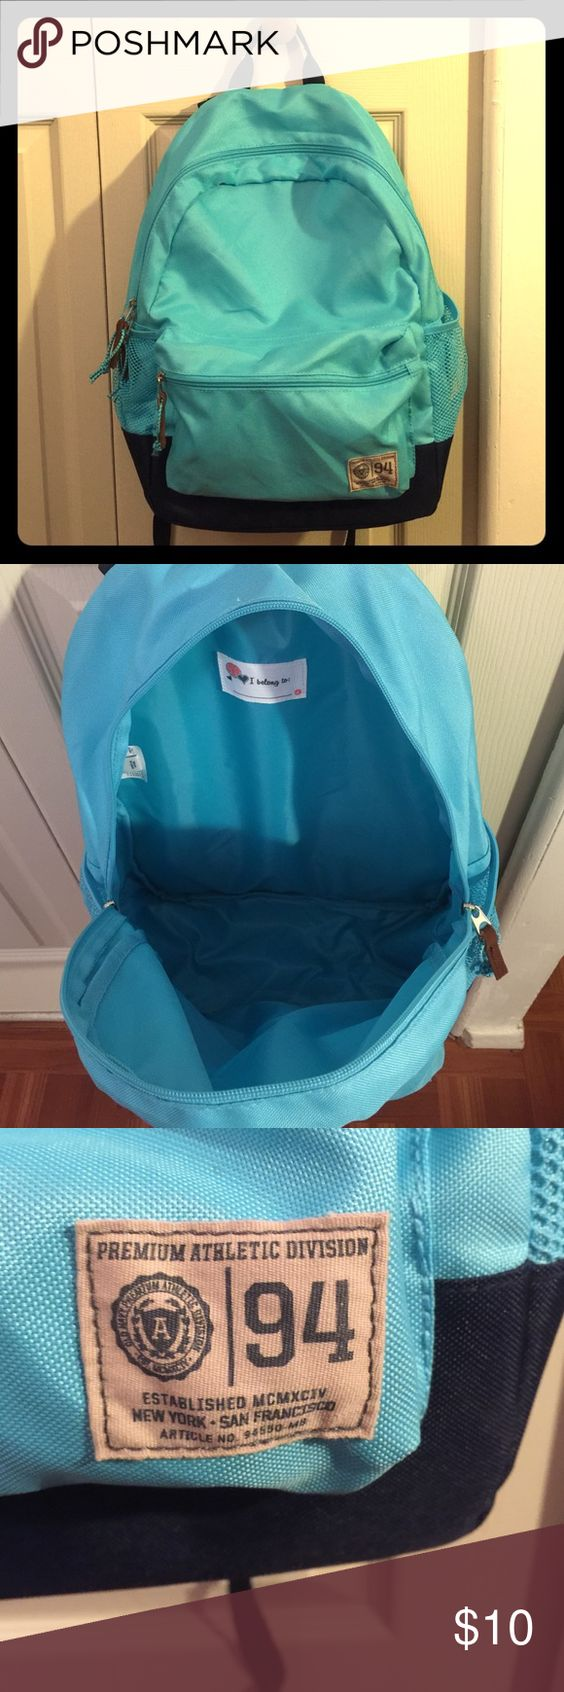 Old Navy Backpack Nice practically new.  Perfect for school, work or a travel pack. Old Navy Bags Backpacks